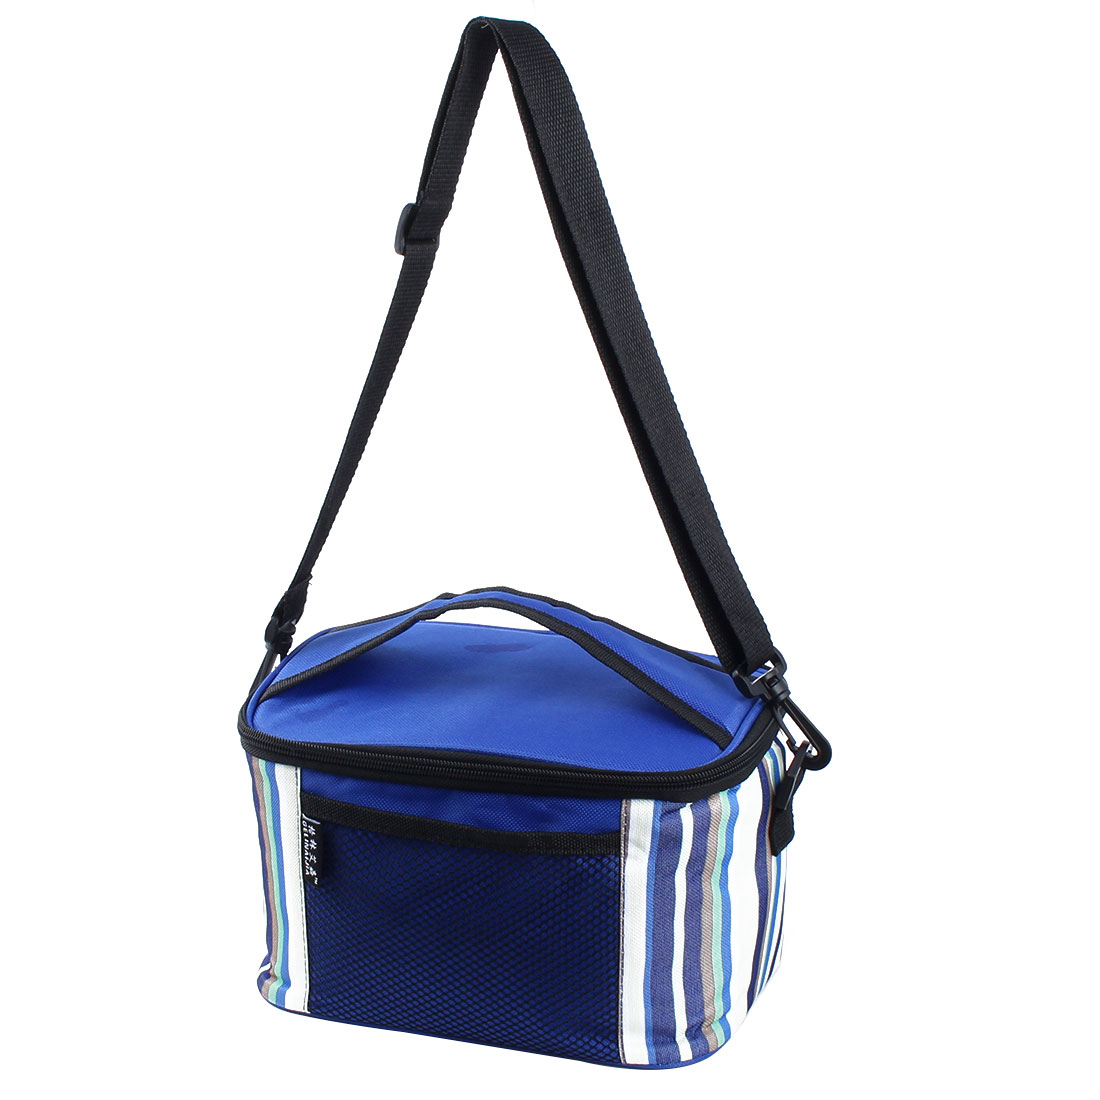 Outdoor Camping Insulated Thermal Lunch Picnic Cooler Box Carry Tote Bag Storage Blue